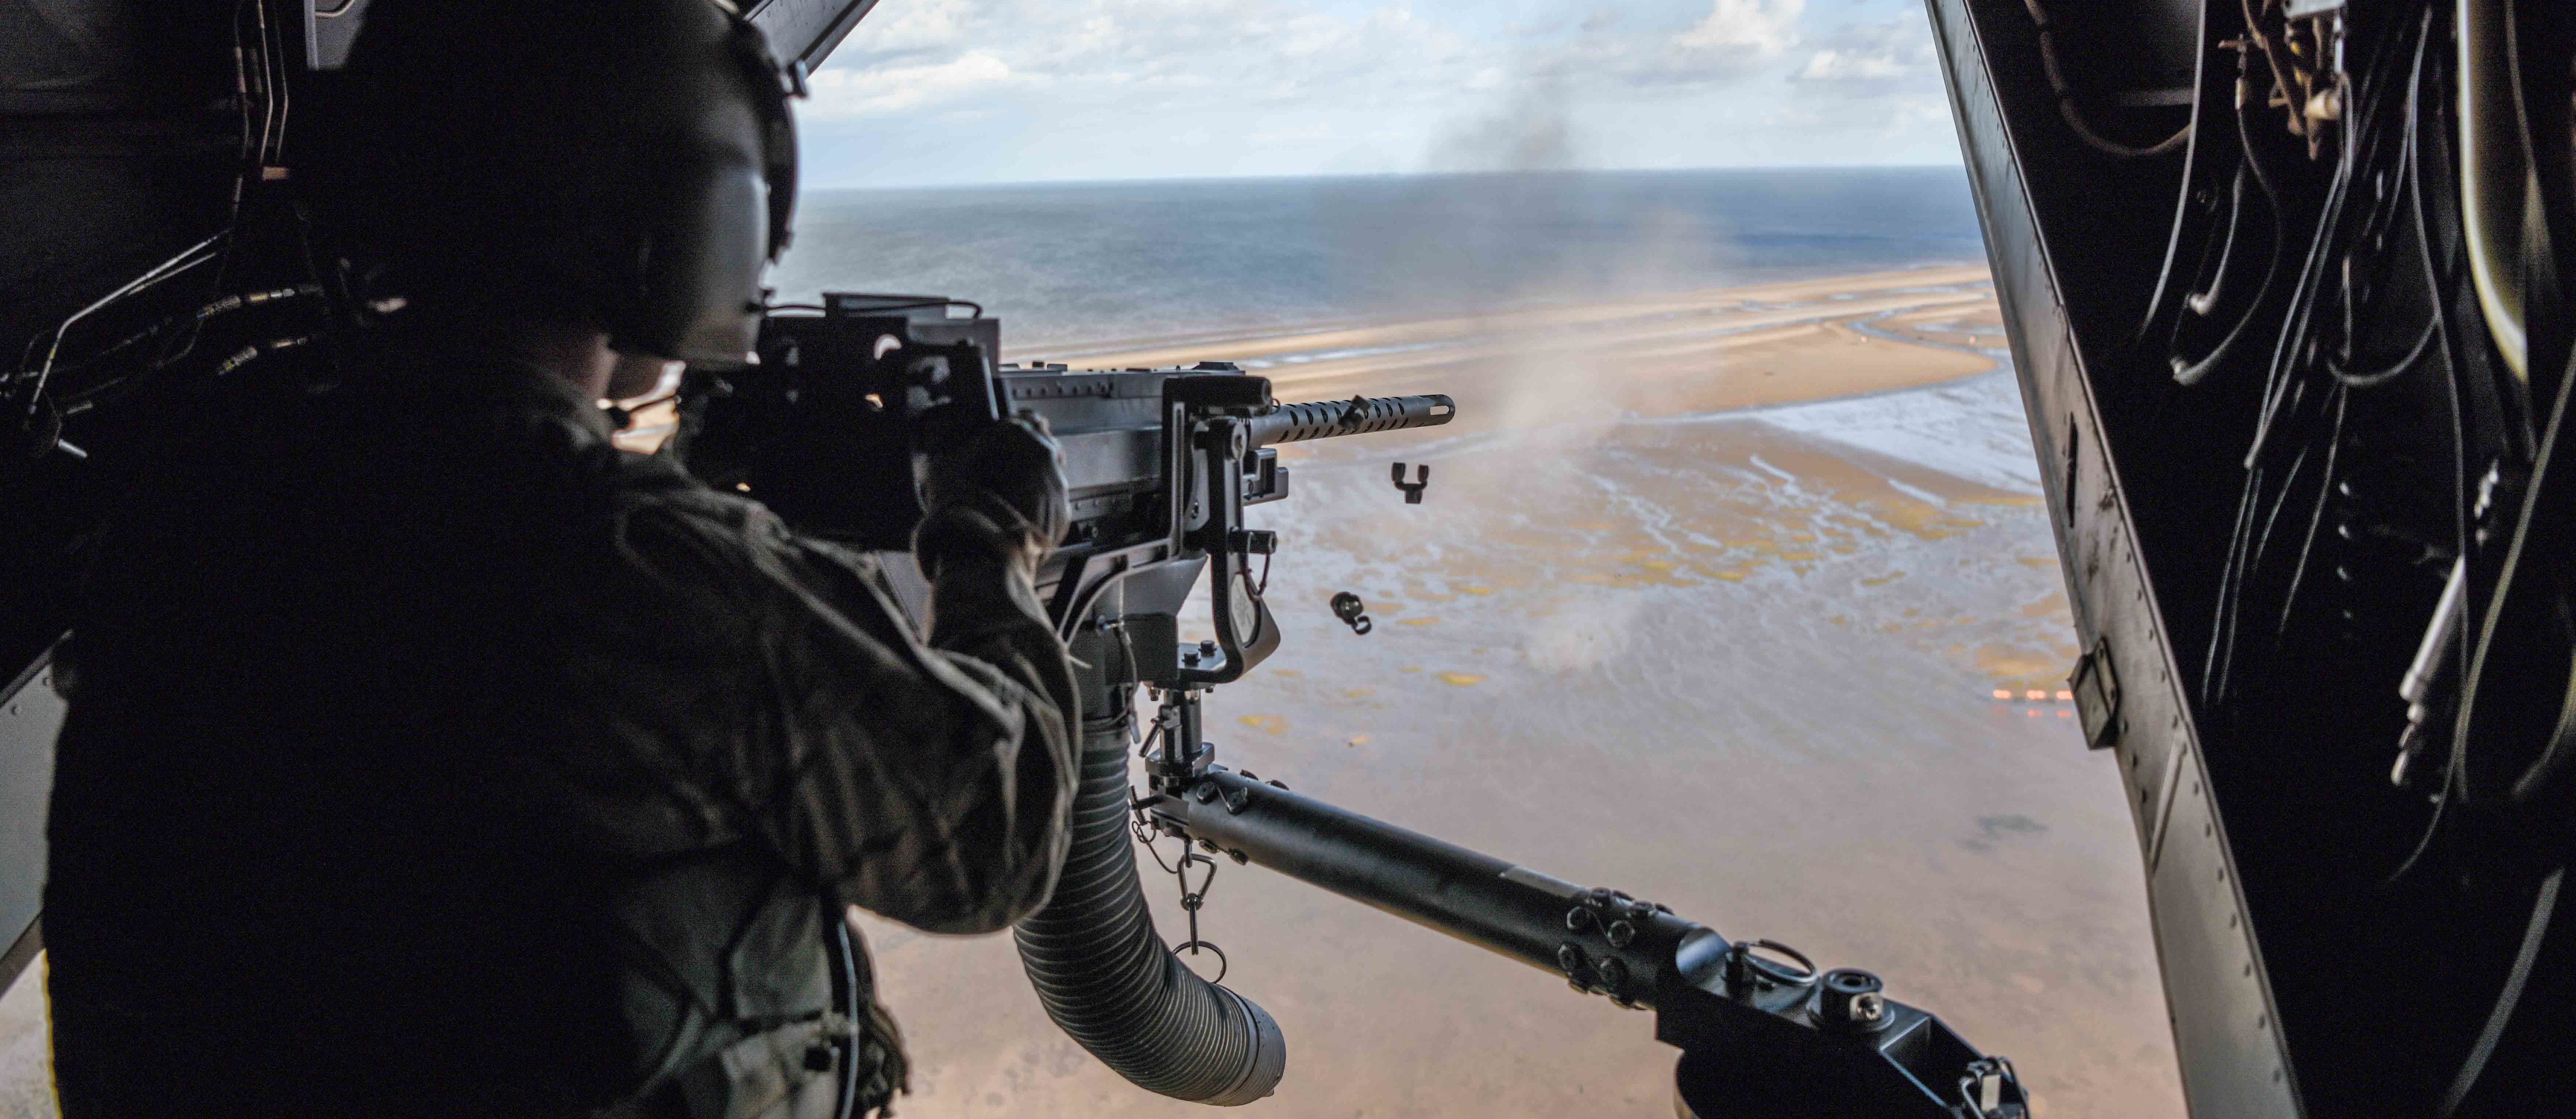 An Air Commando from the 7th Special Operations Squadron, 352d Special Operations Wing fires a .50 caliber machine gun aboard a CV-22 Osprey during a flight around southern England in September 2017. (U.S. Air Force photo by Staff Sgt. Philip Steiner)